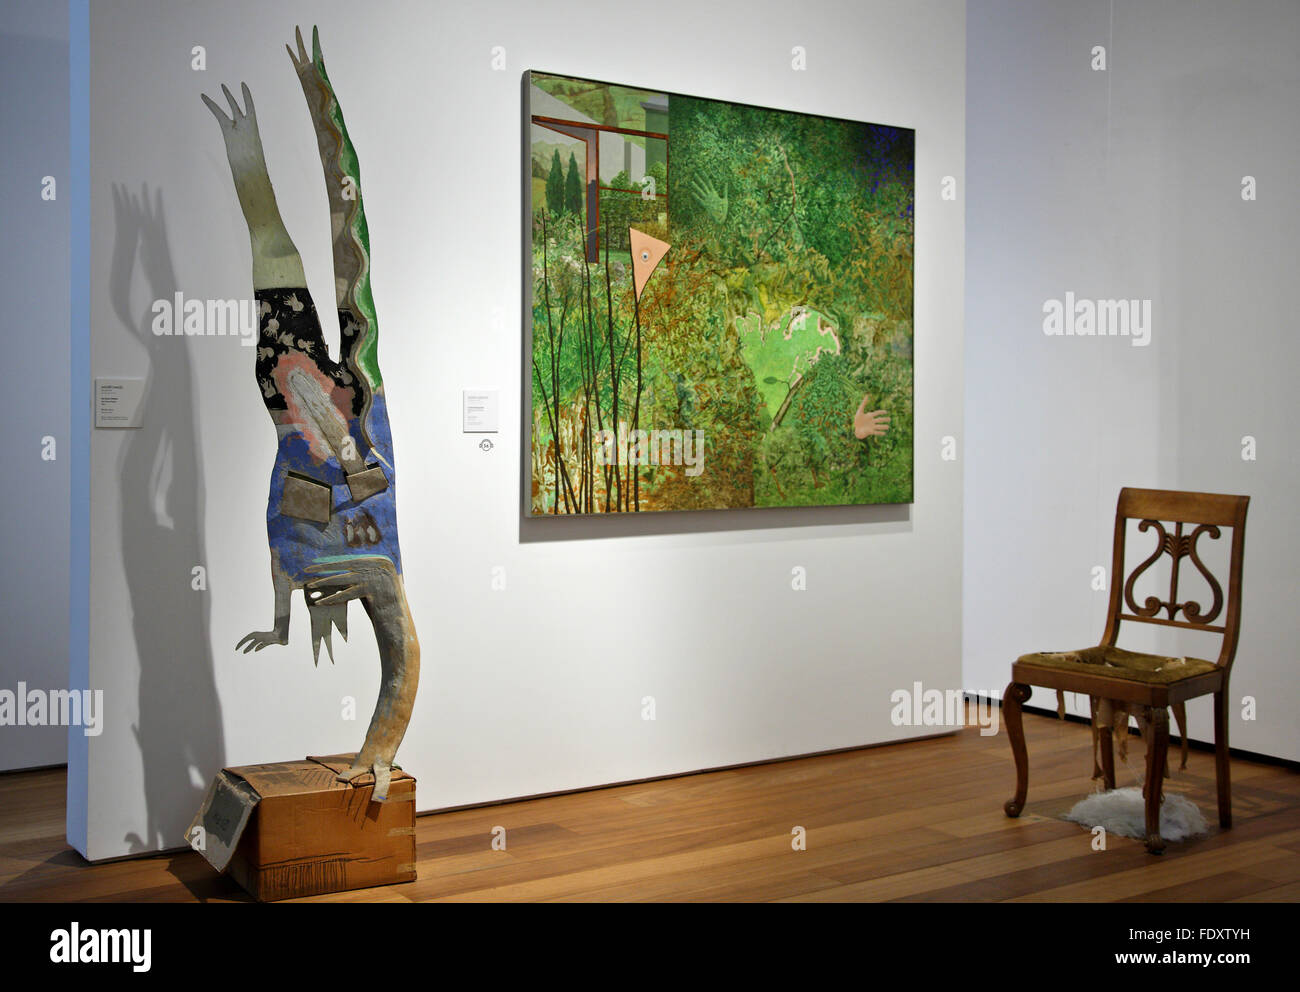 Works by Basque artists in the San Telmo museum, Donostia- San Sebastian, Basque country, Spain. - Stock Image